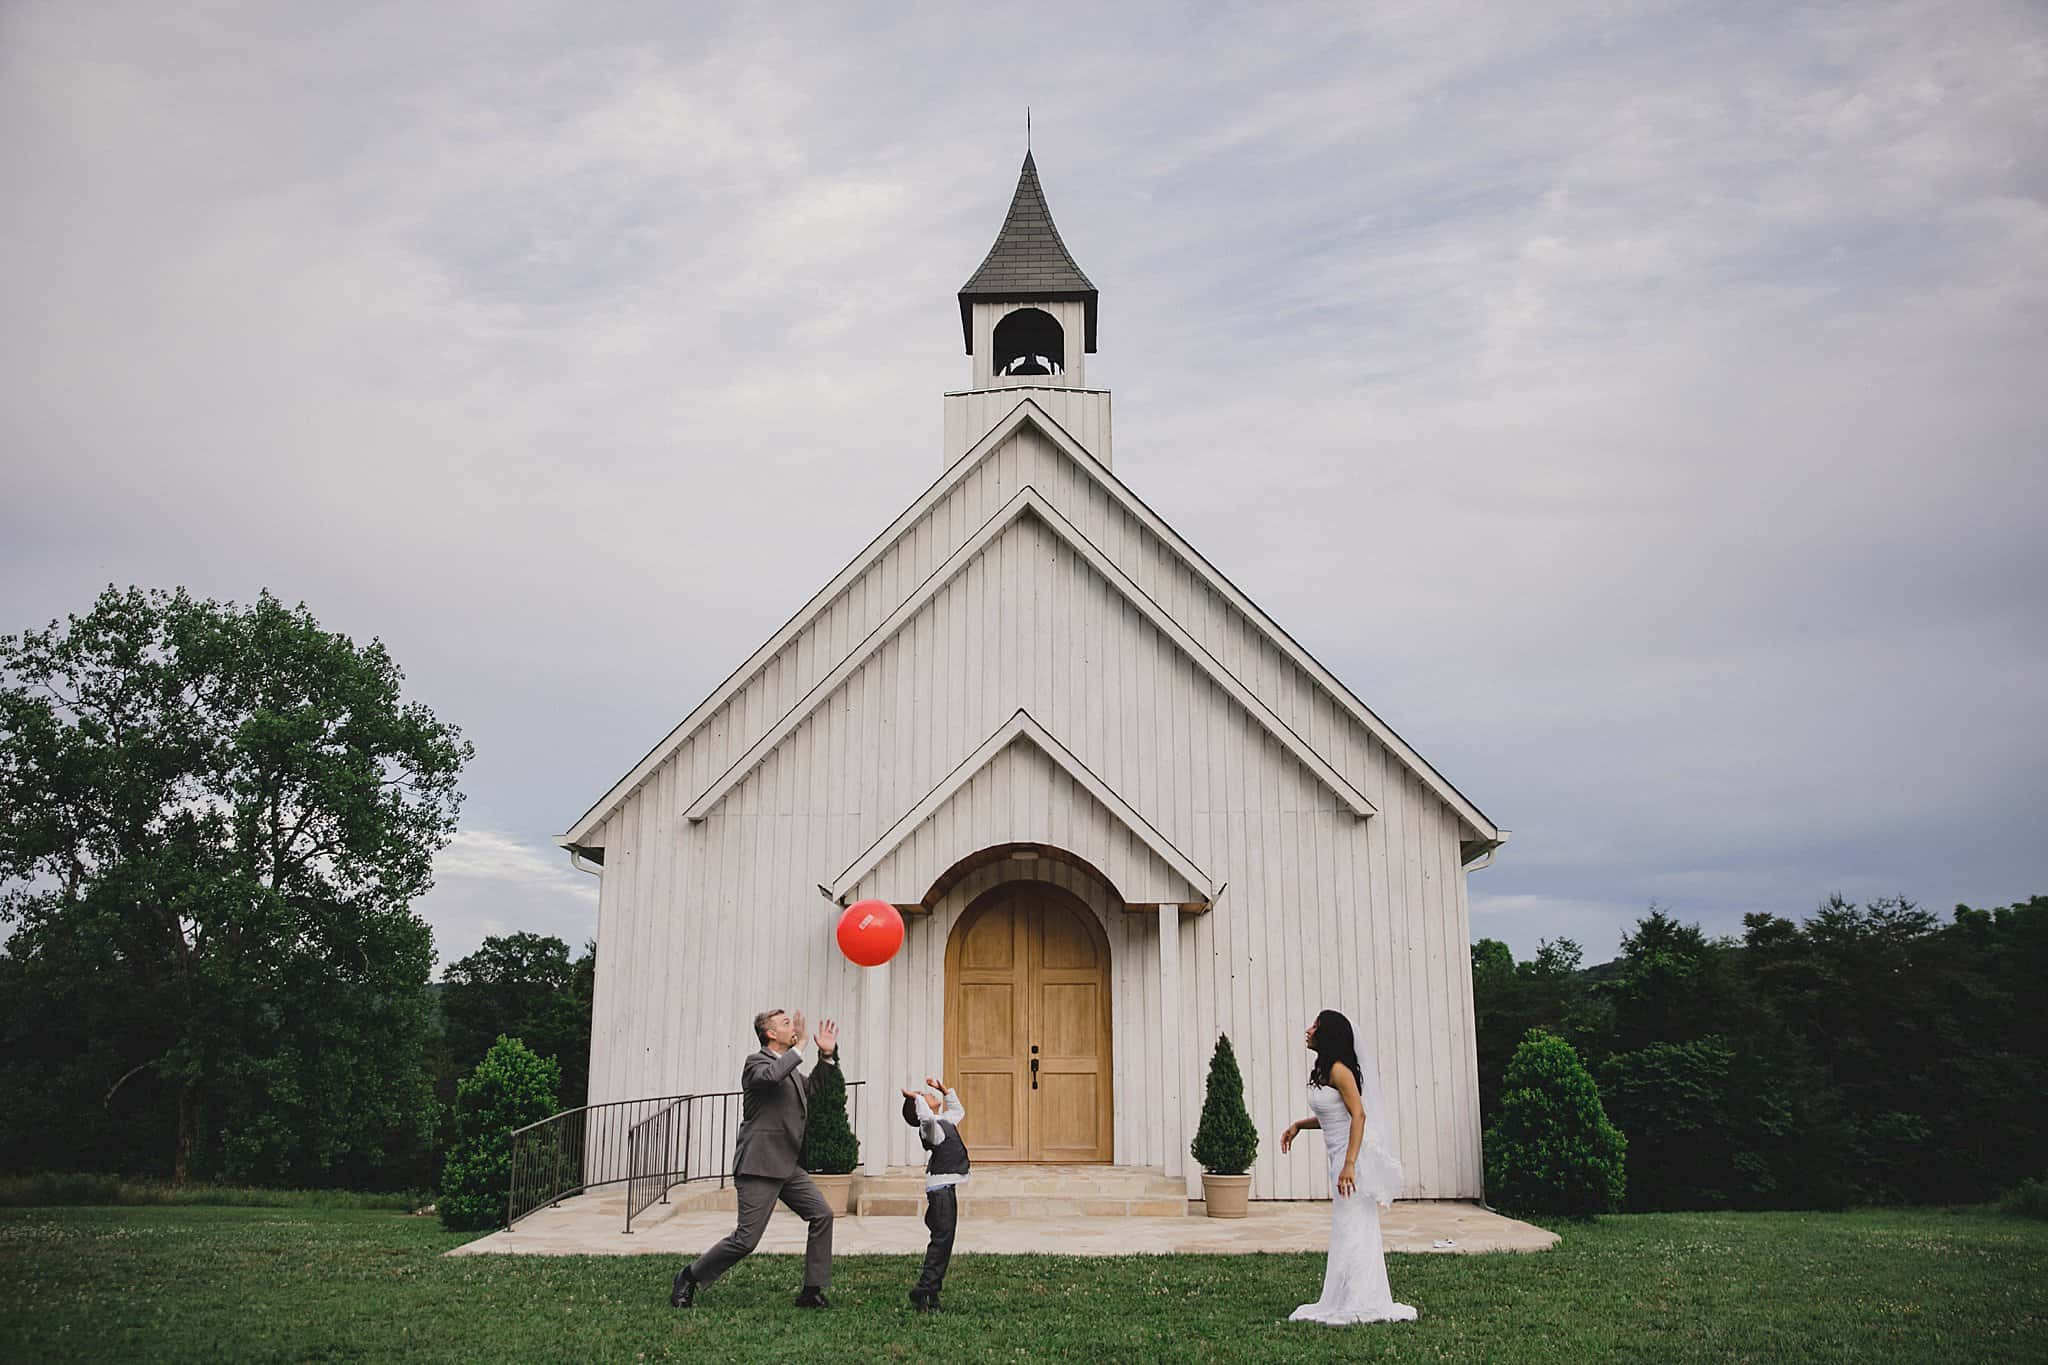 Shonta & Nolan - Intimate Chapel Elopement at Lane's Bend in Cookeville, Tennessee